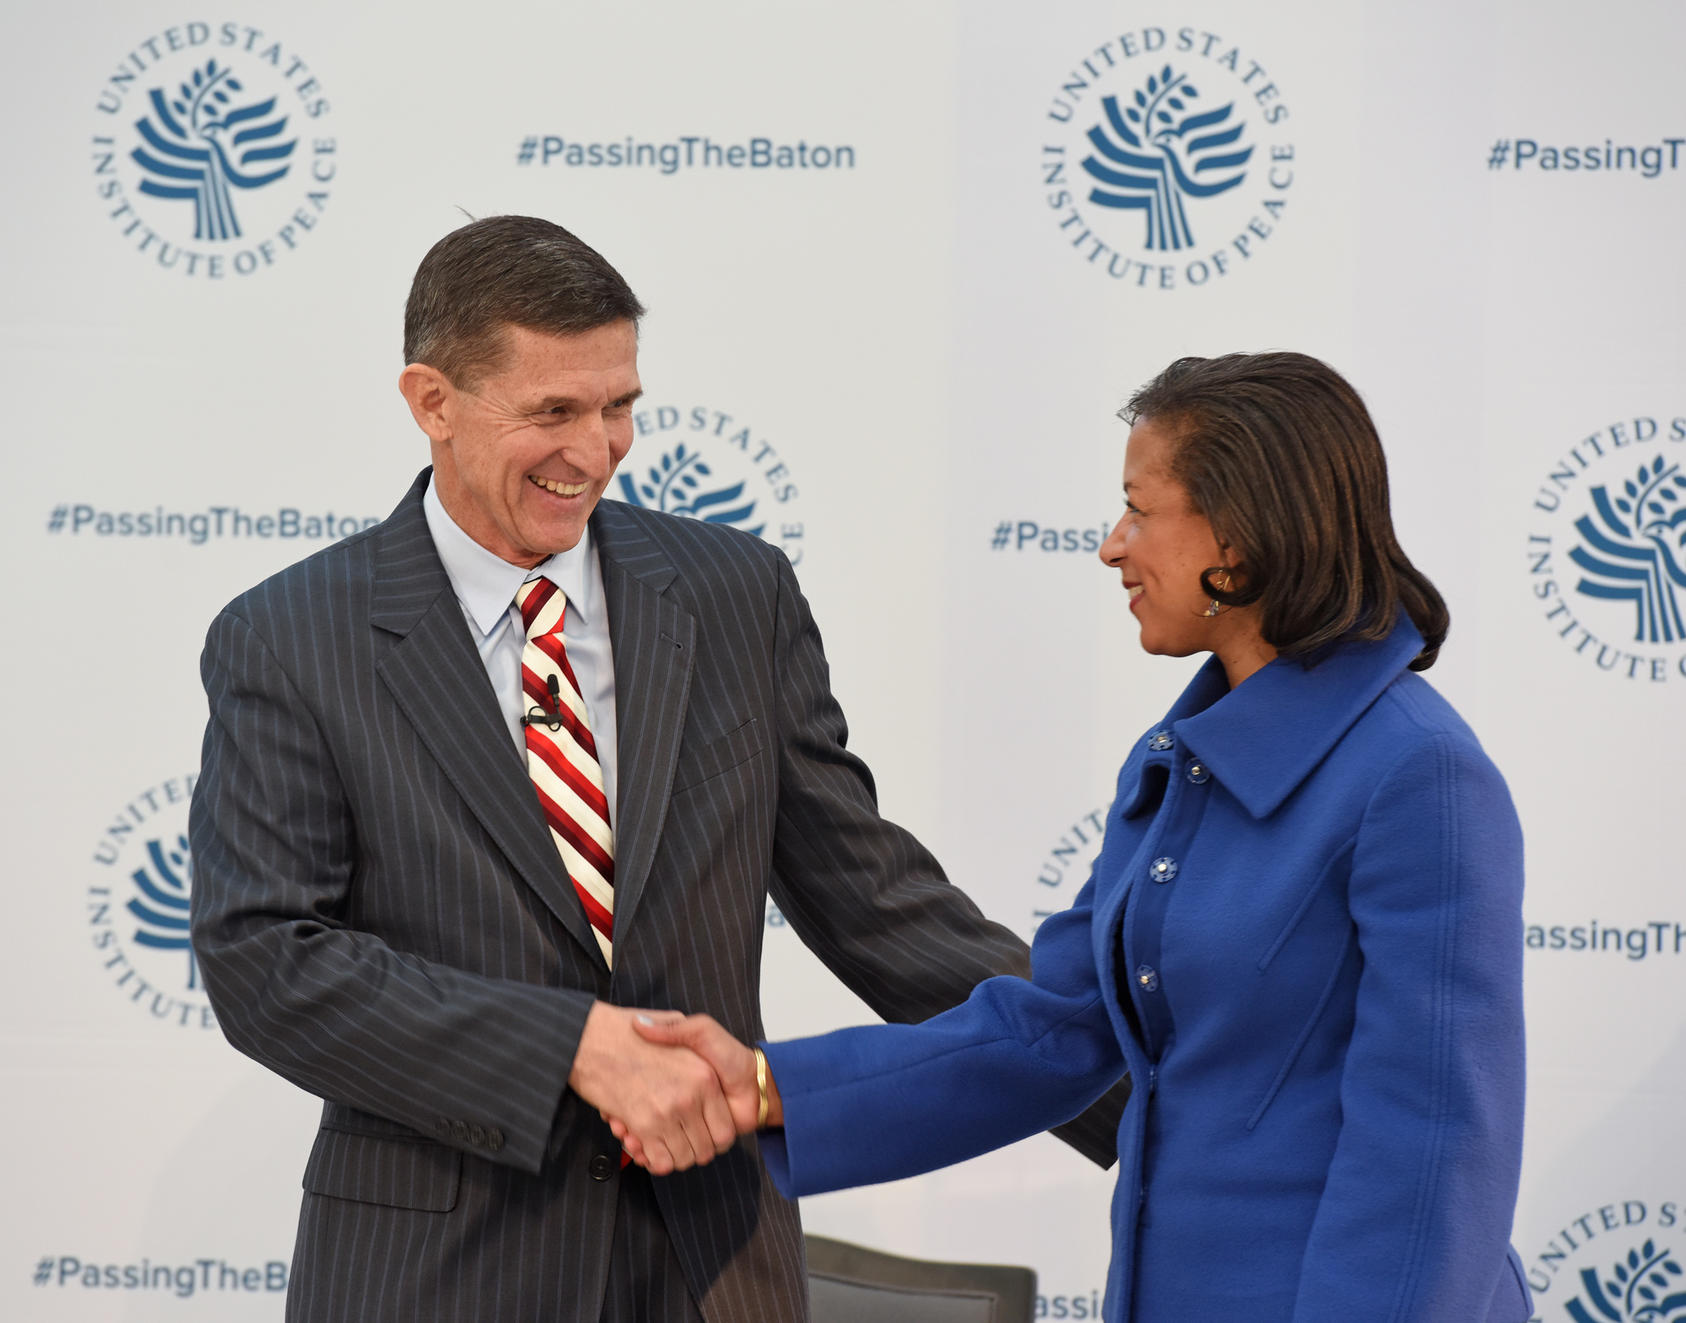 Lieutenant General Michael Flynn and Ambassador Susan Rice